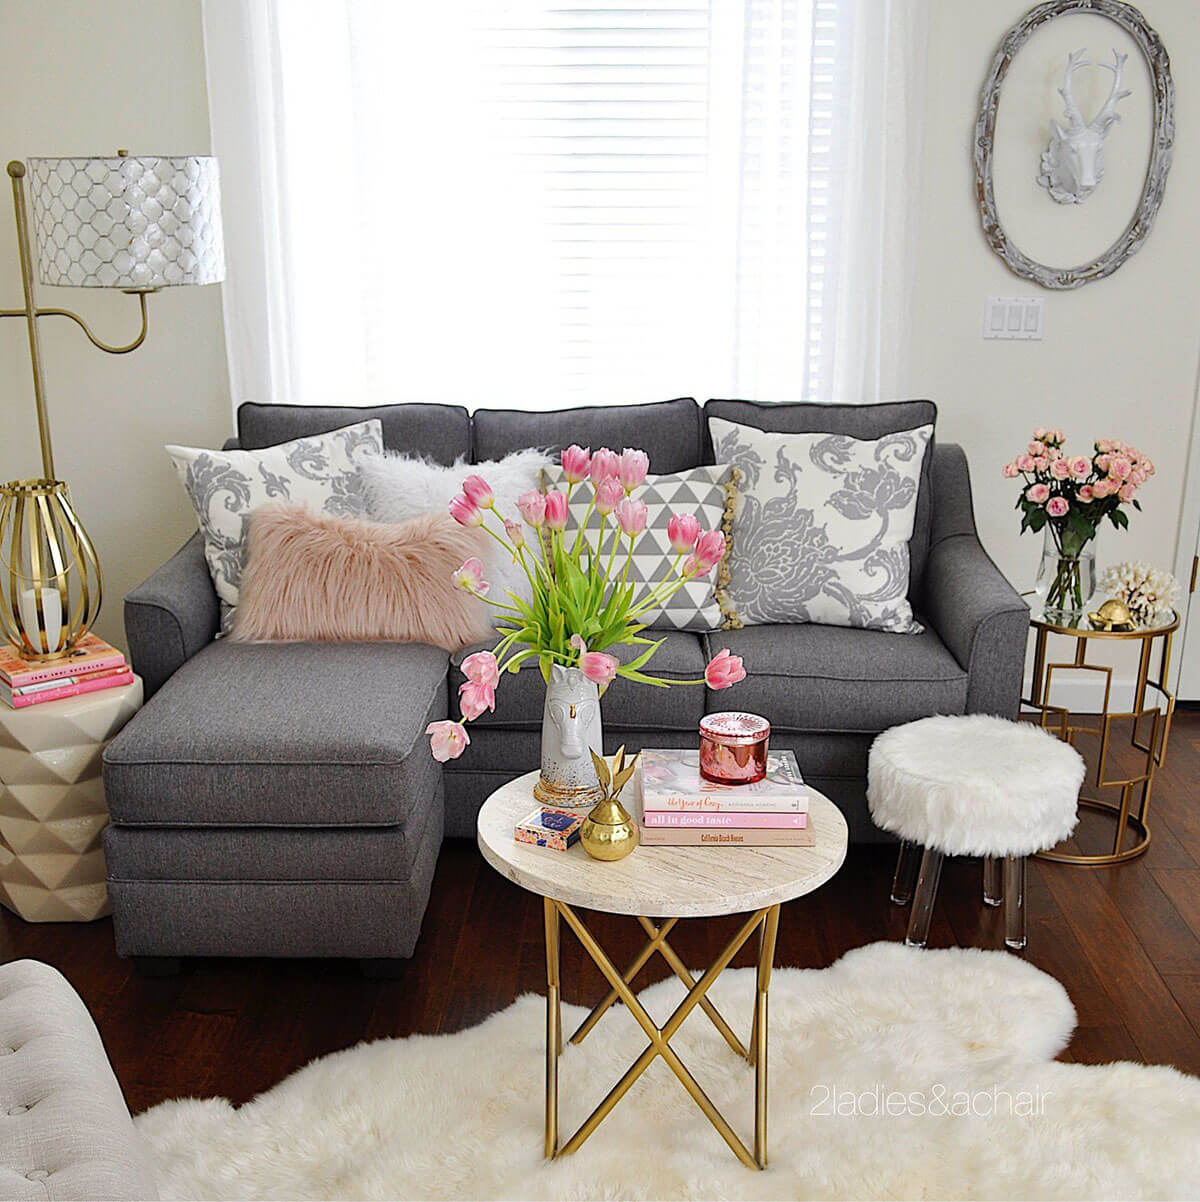 Decoration Examples: Decoration Examples For Small Living Rooms